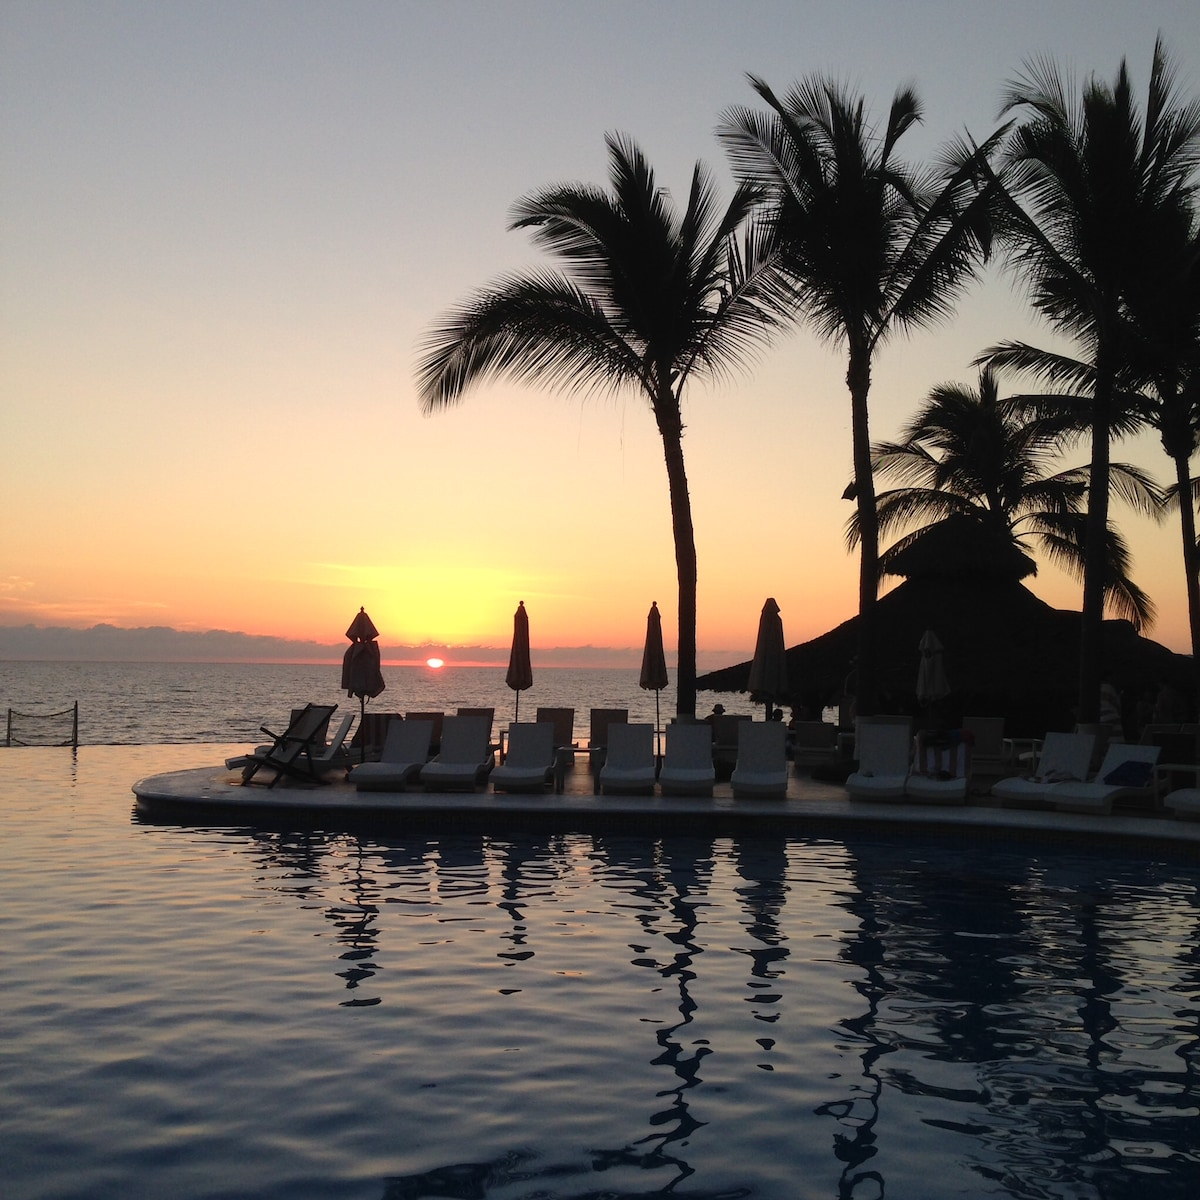 Typical sunset out by the pool.